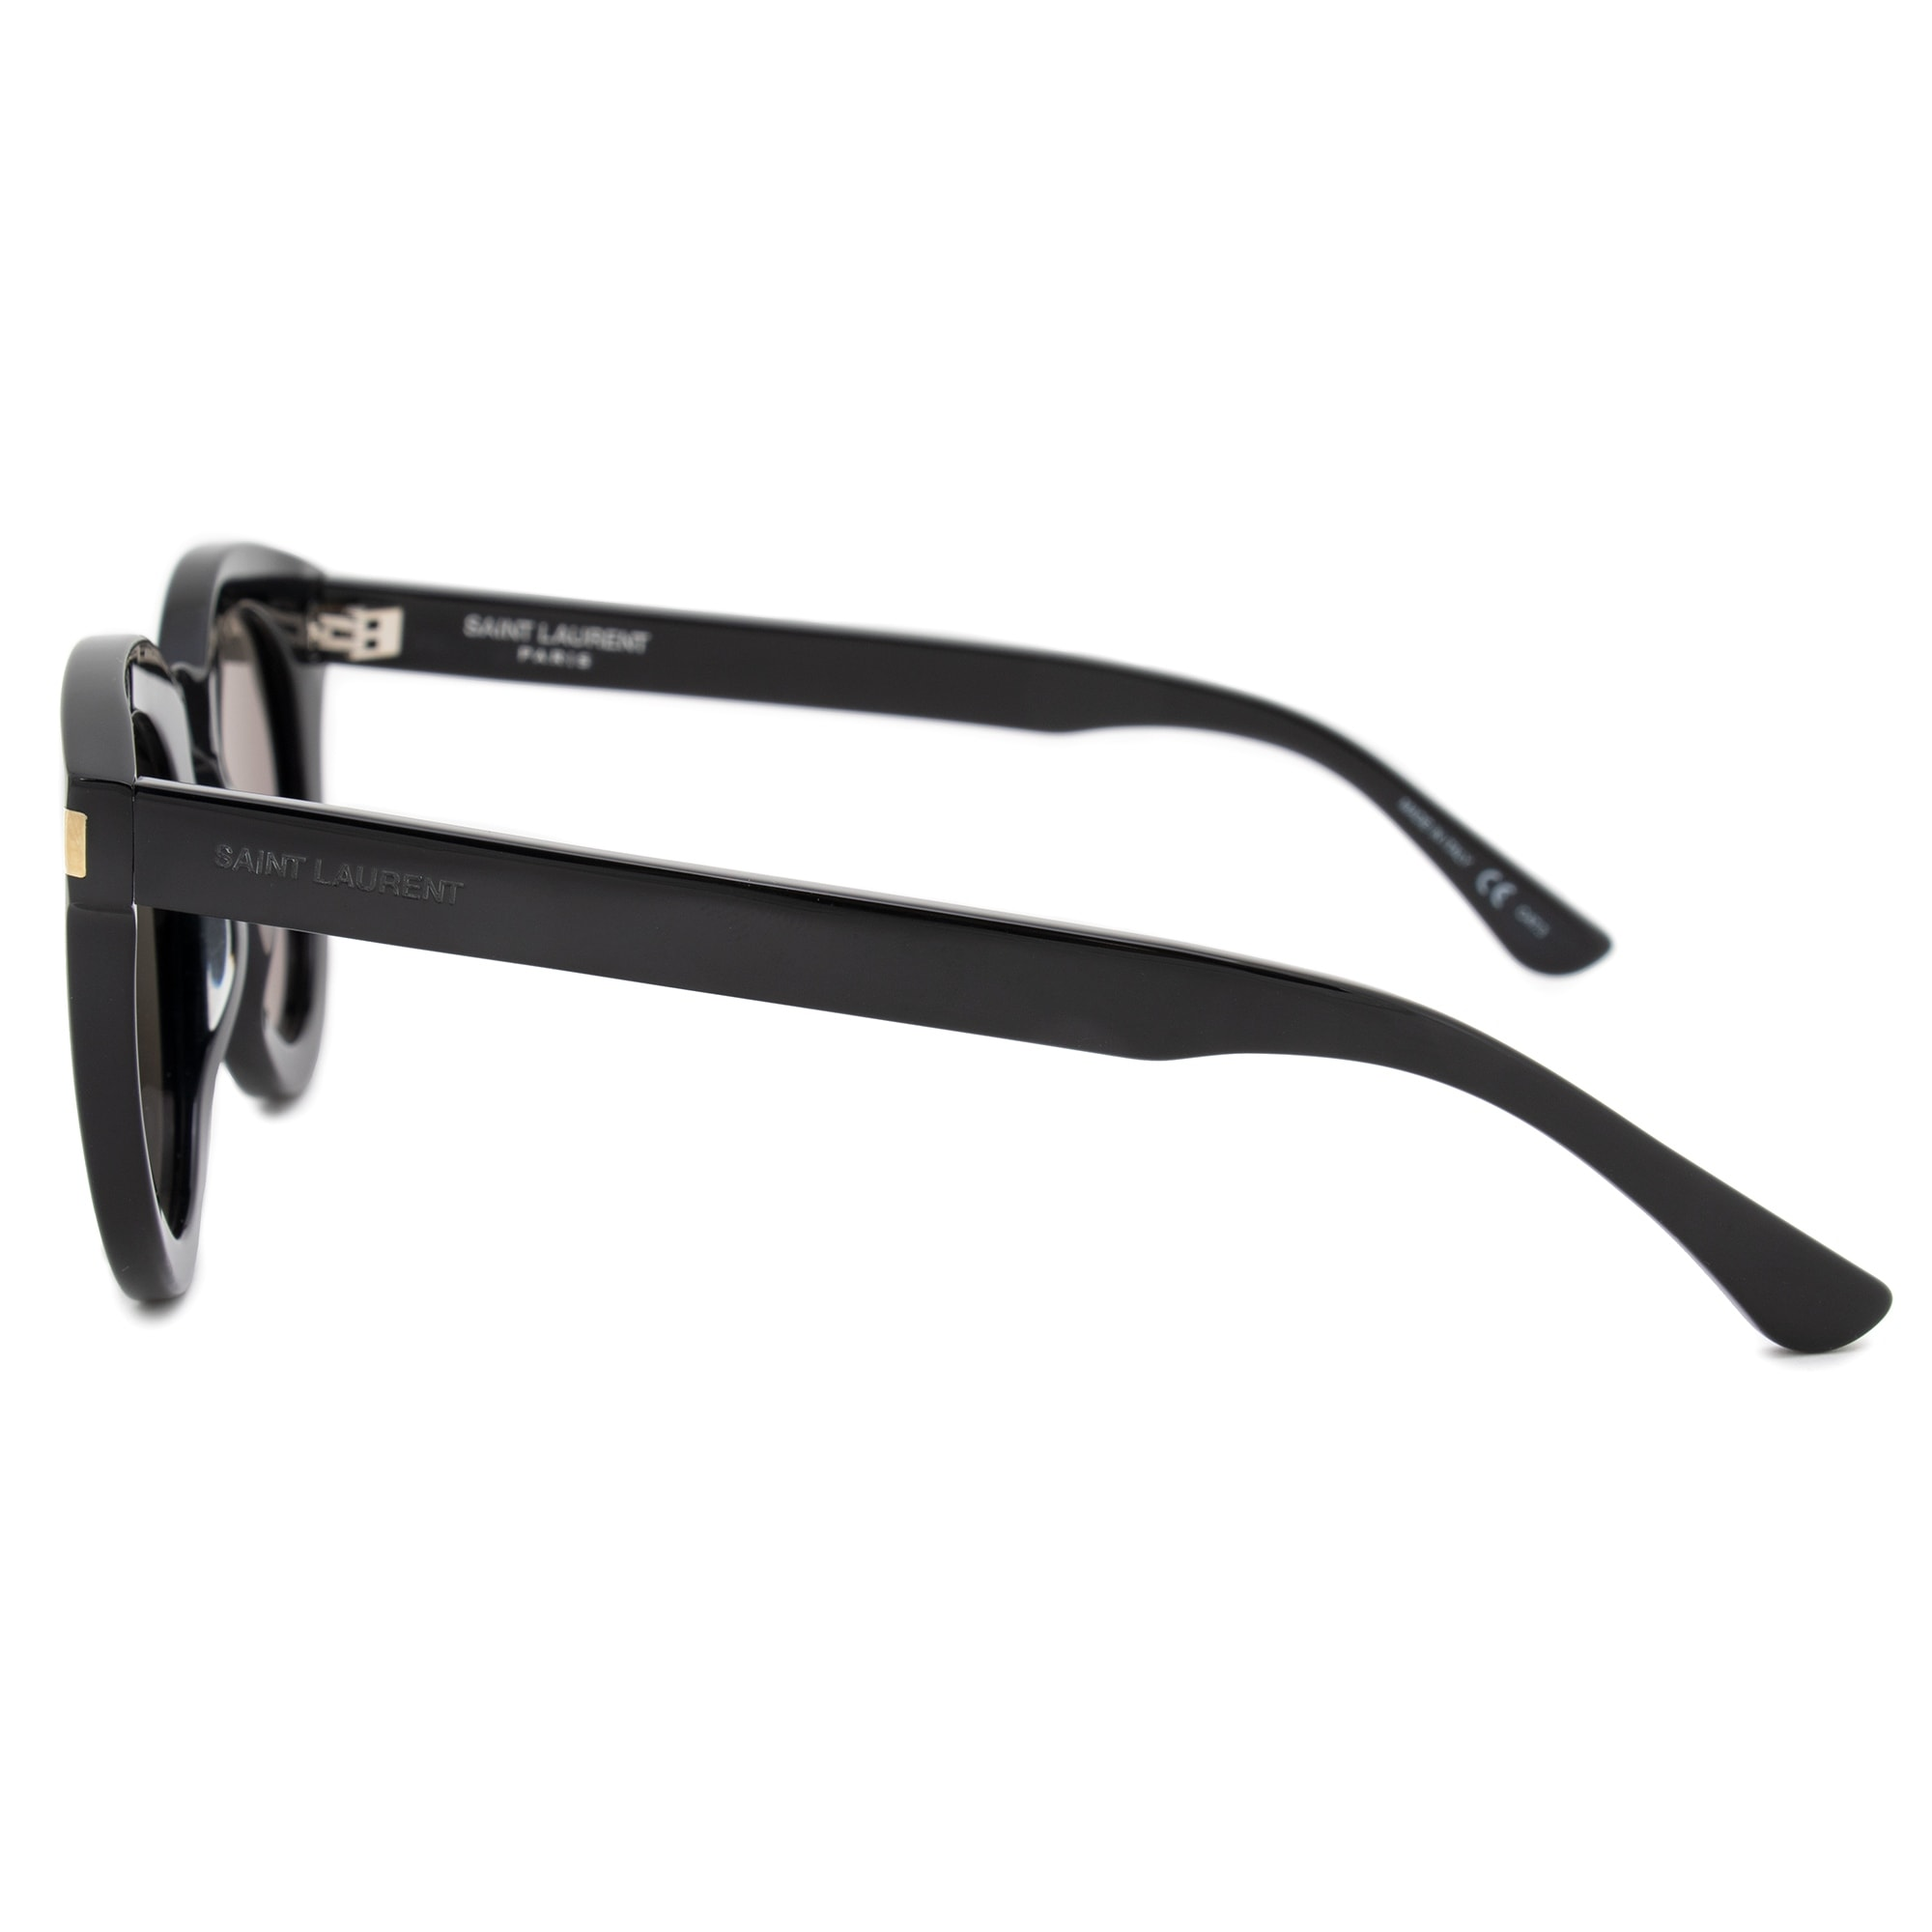 53ee375bec6a Shop Saint Laurent Cateye Sunglasses SL102 001 47 - Free Shipping Today -  Overstock - 25662927